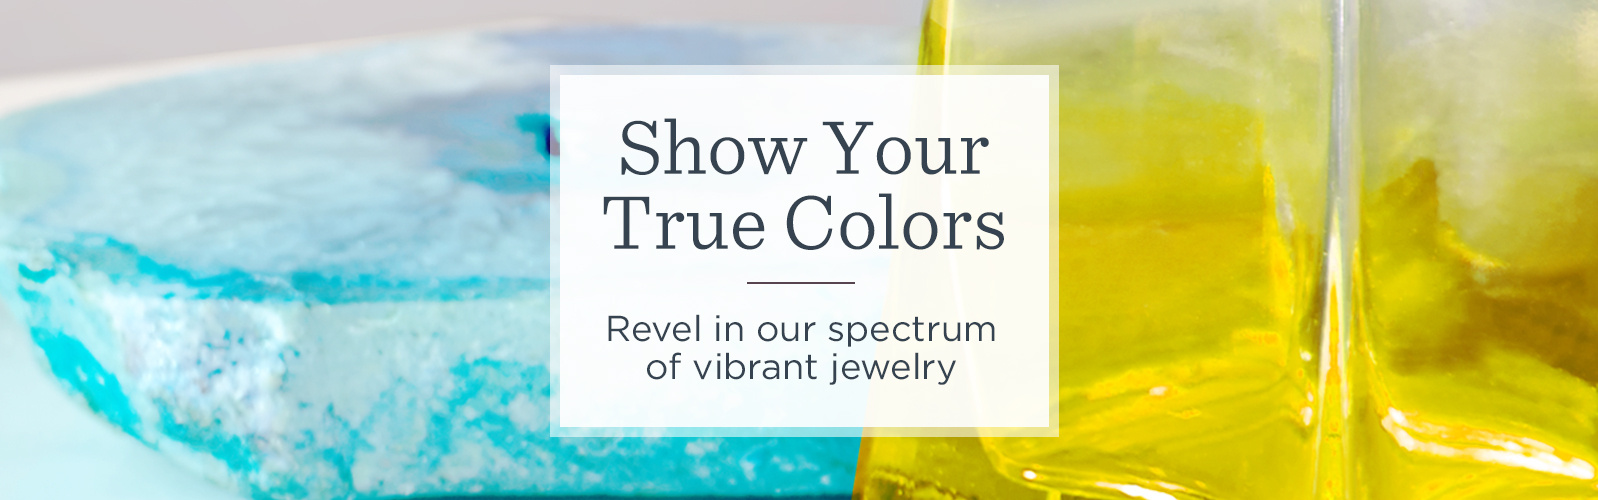 Show Your True Colors  Revel in our spectrum of vibrant jewelry